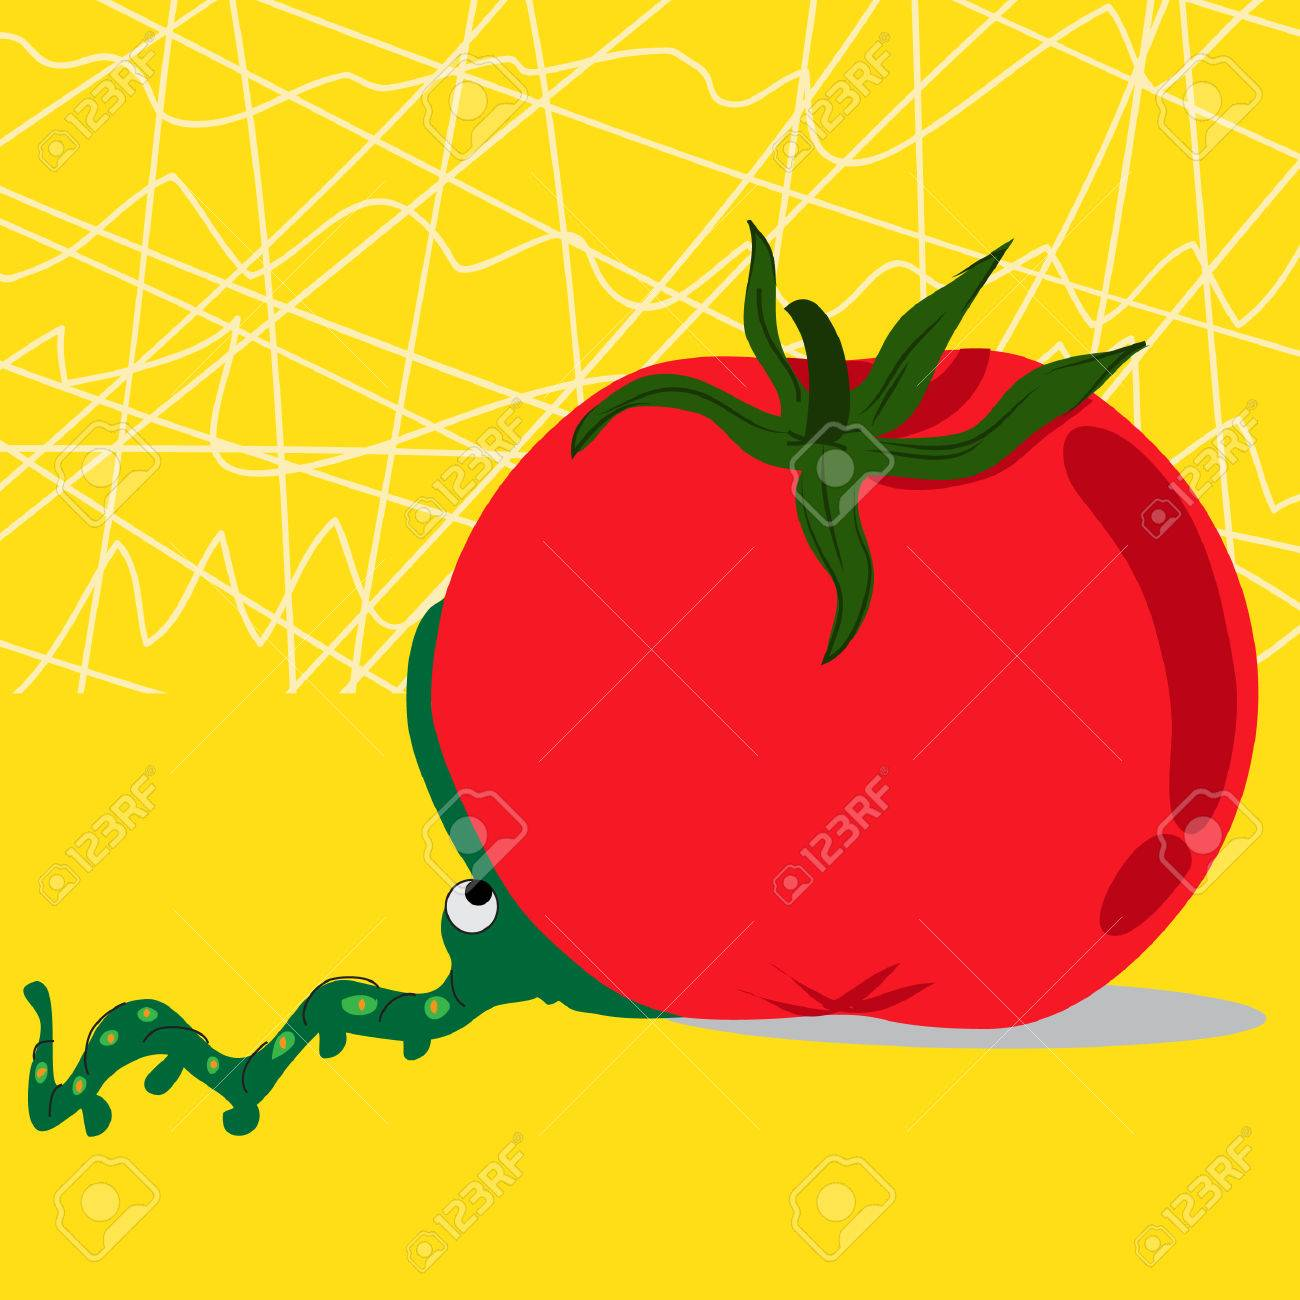 Background image too big - An Adorable Worm Attempting To Chew The Too Big Tomato On A Yellow Background